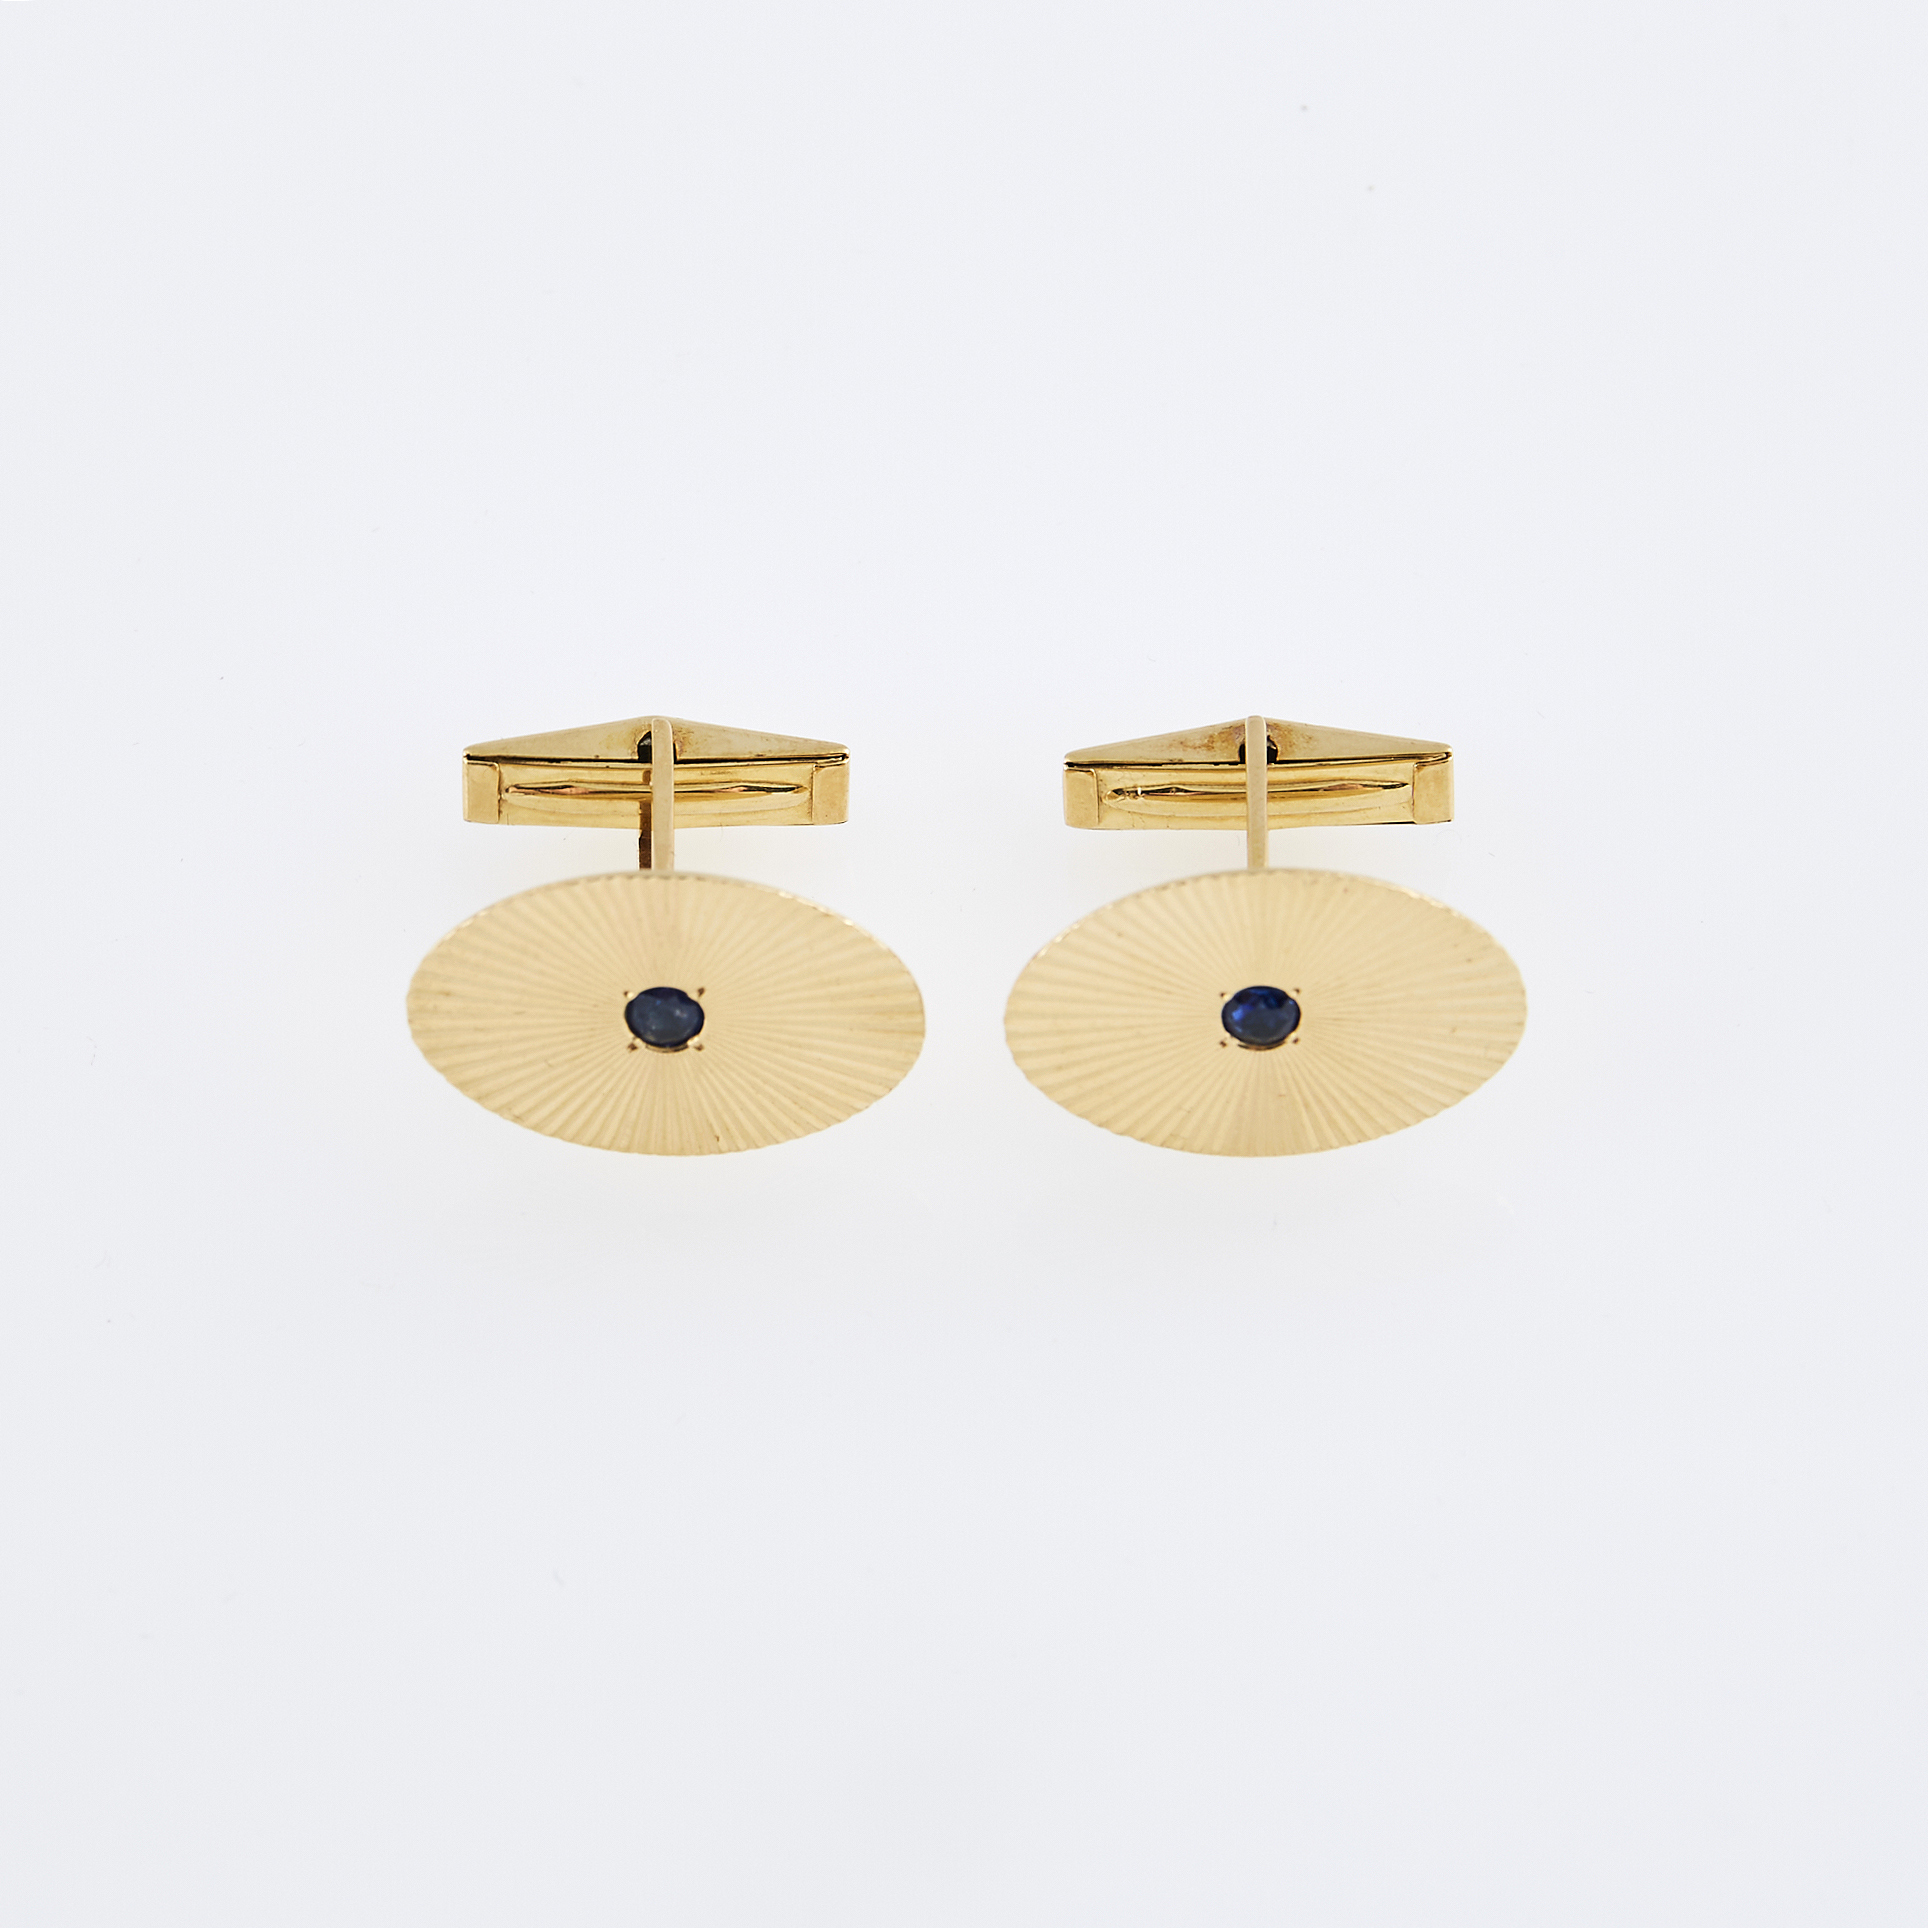 Lot image - Two Gold and Stone Cuff Links, 14K 5 dwt. all